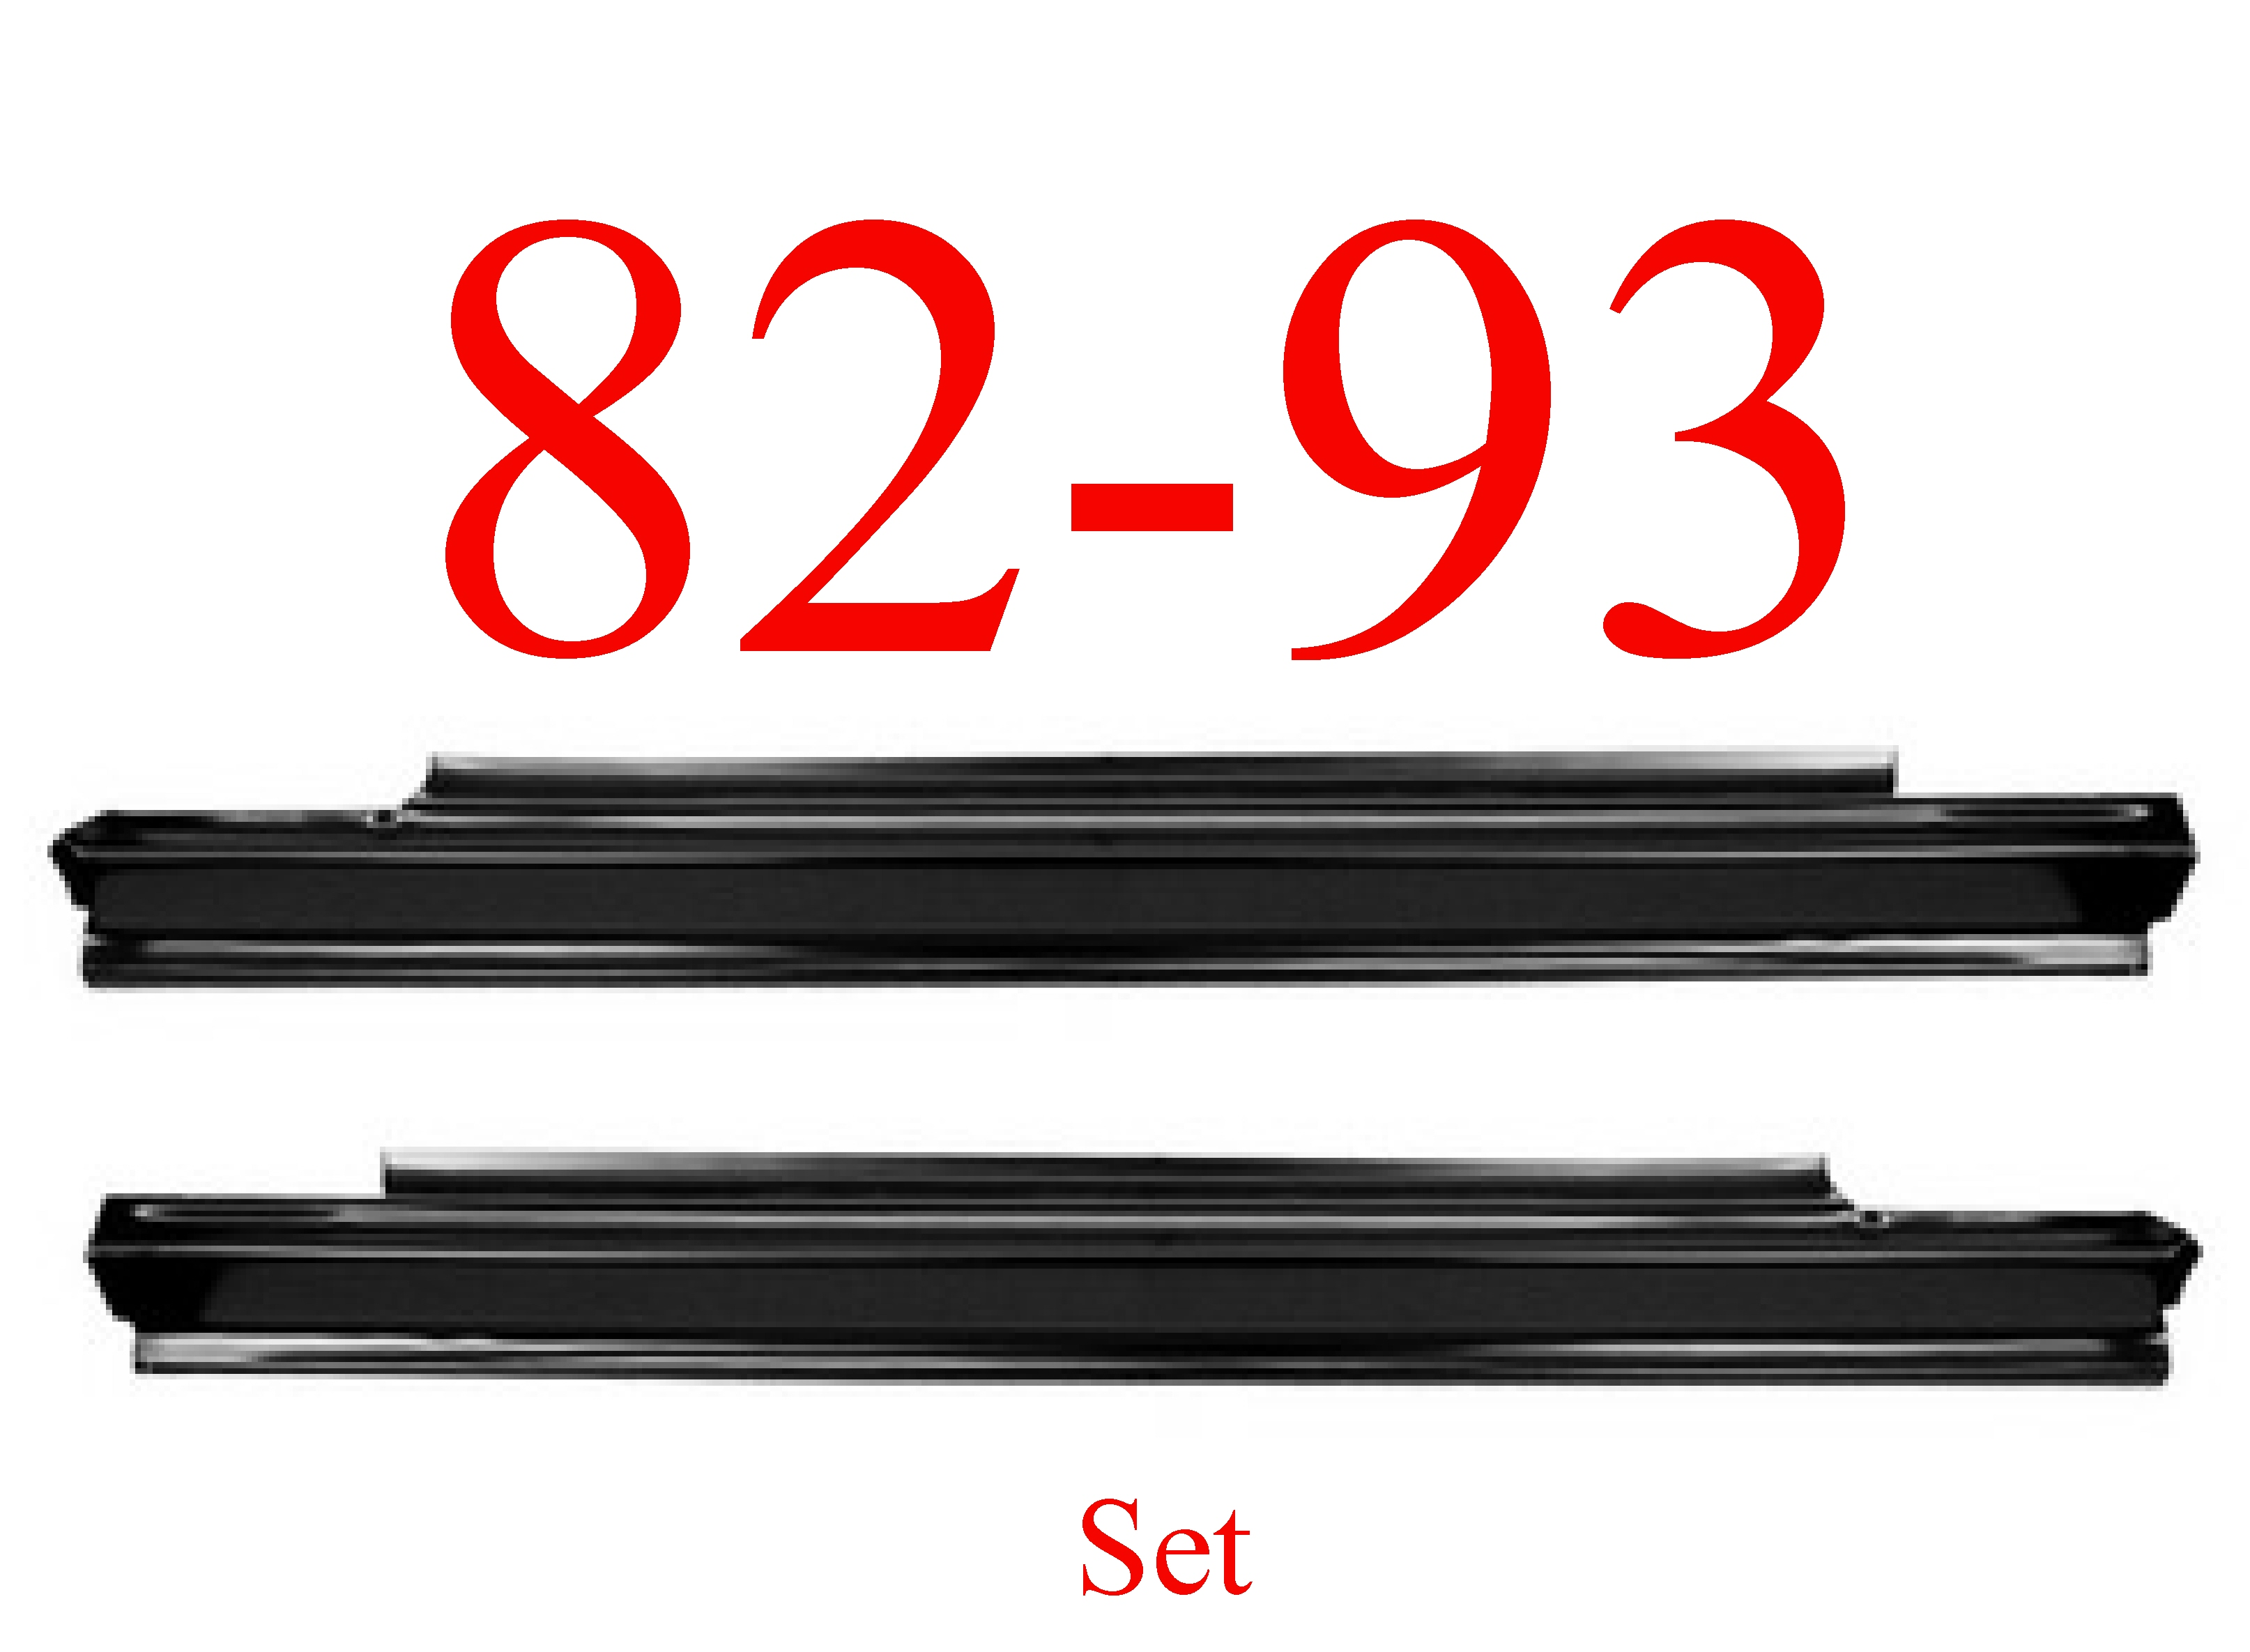 82-93 Chevy S10 Slip-On Rocker Panel SET